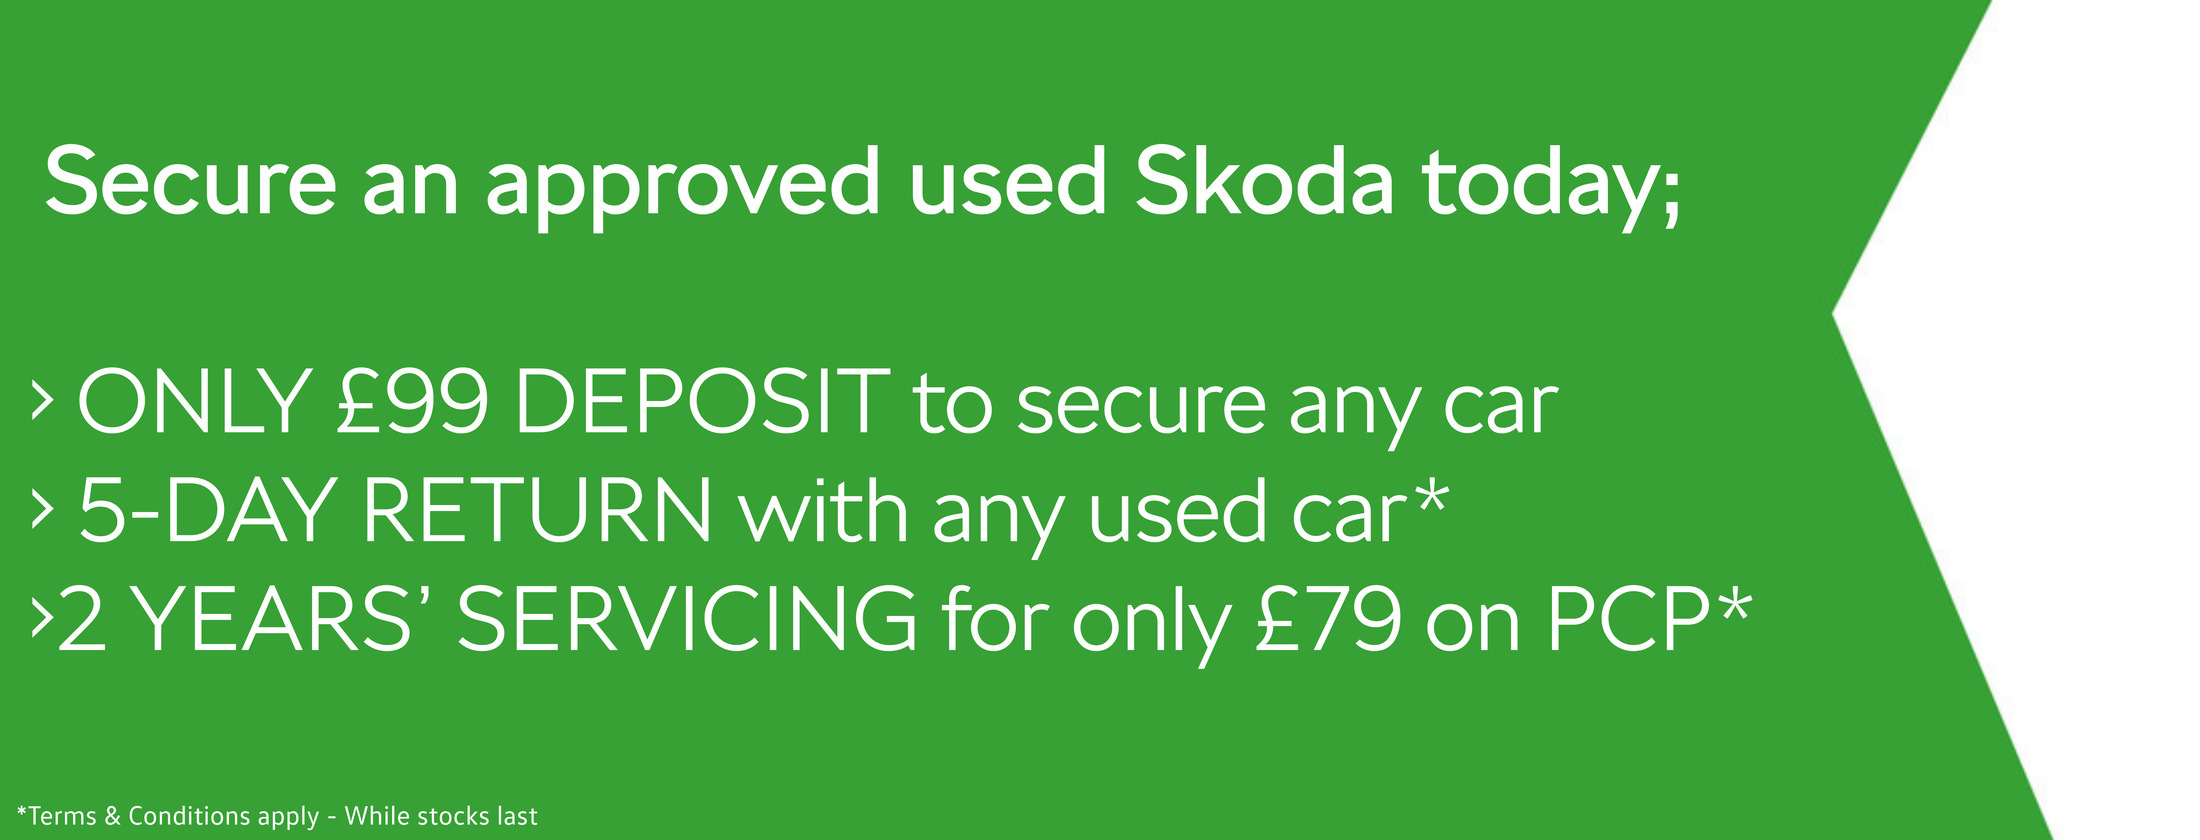 Secure a Used Skoda Today